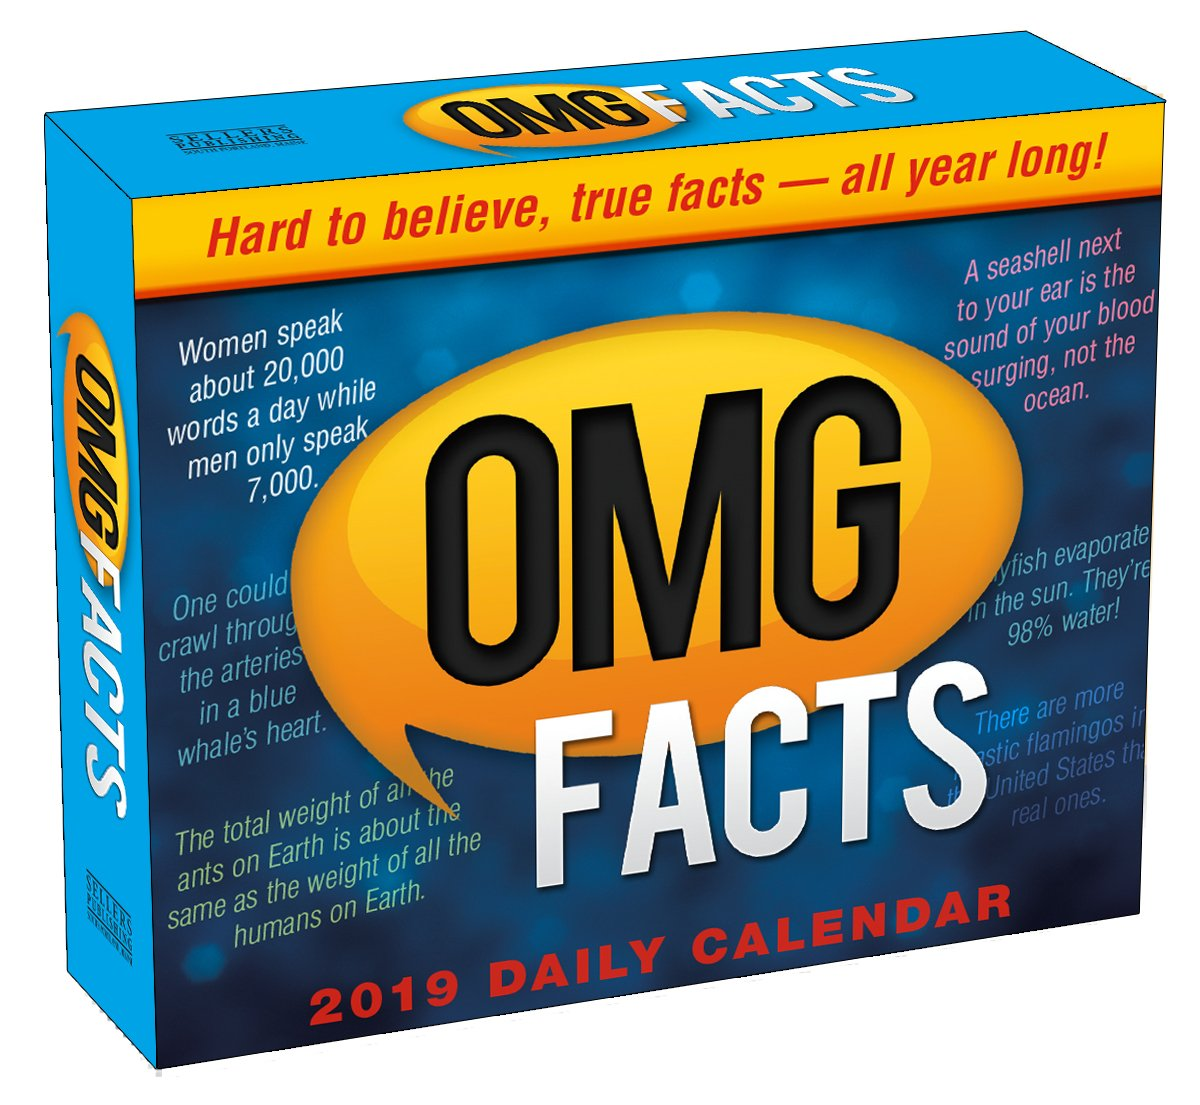 Calendar Year Same As 2019 With OMG Facts Boxed Daily By Sellers Publishing 6 X 5